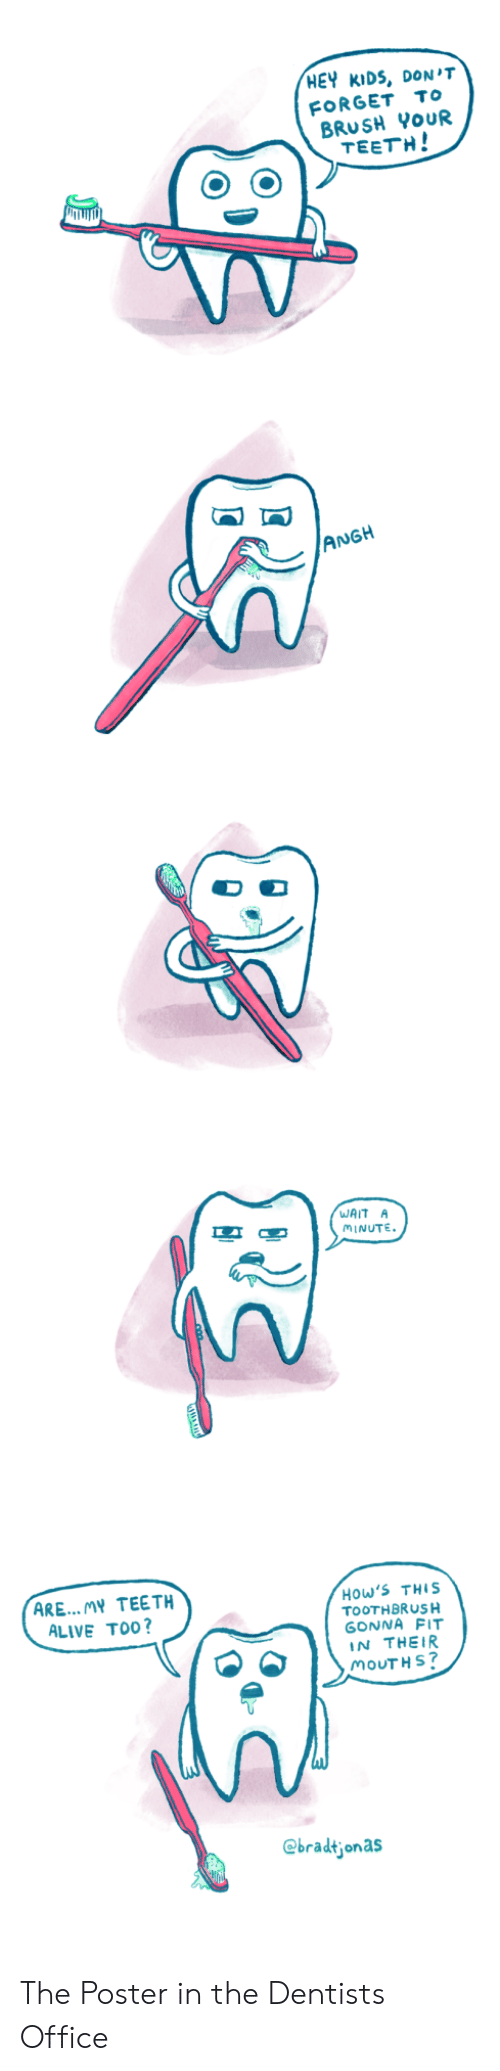 Hey Kids: HEY KIDS, DON'T  FORGET To  BRUSH YoUR  TEETH!  ANGH  WAIT A  MINUTE  ARE... MY TEETH  ALIVE TO0?  How'S THIS  TOOTHBRUSH  GONNA FIT  IN THEIR  MOUTH S  @bradtjonas The Poster in the Dentists Office